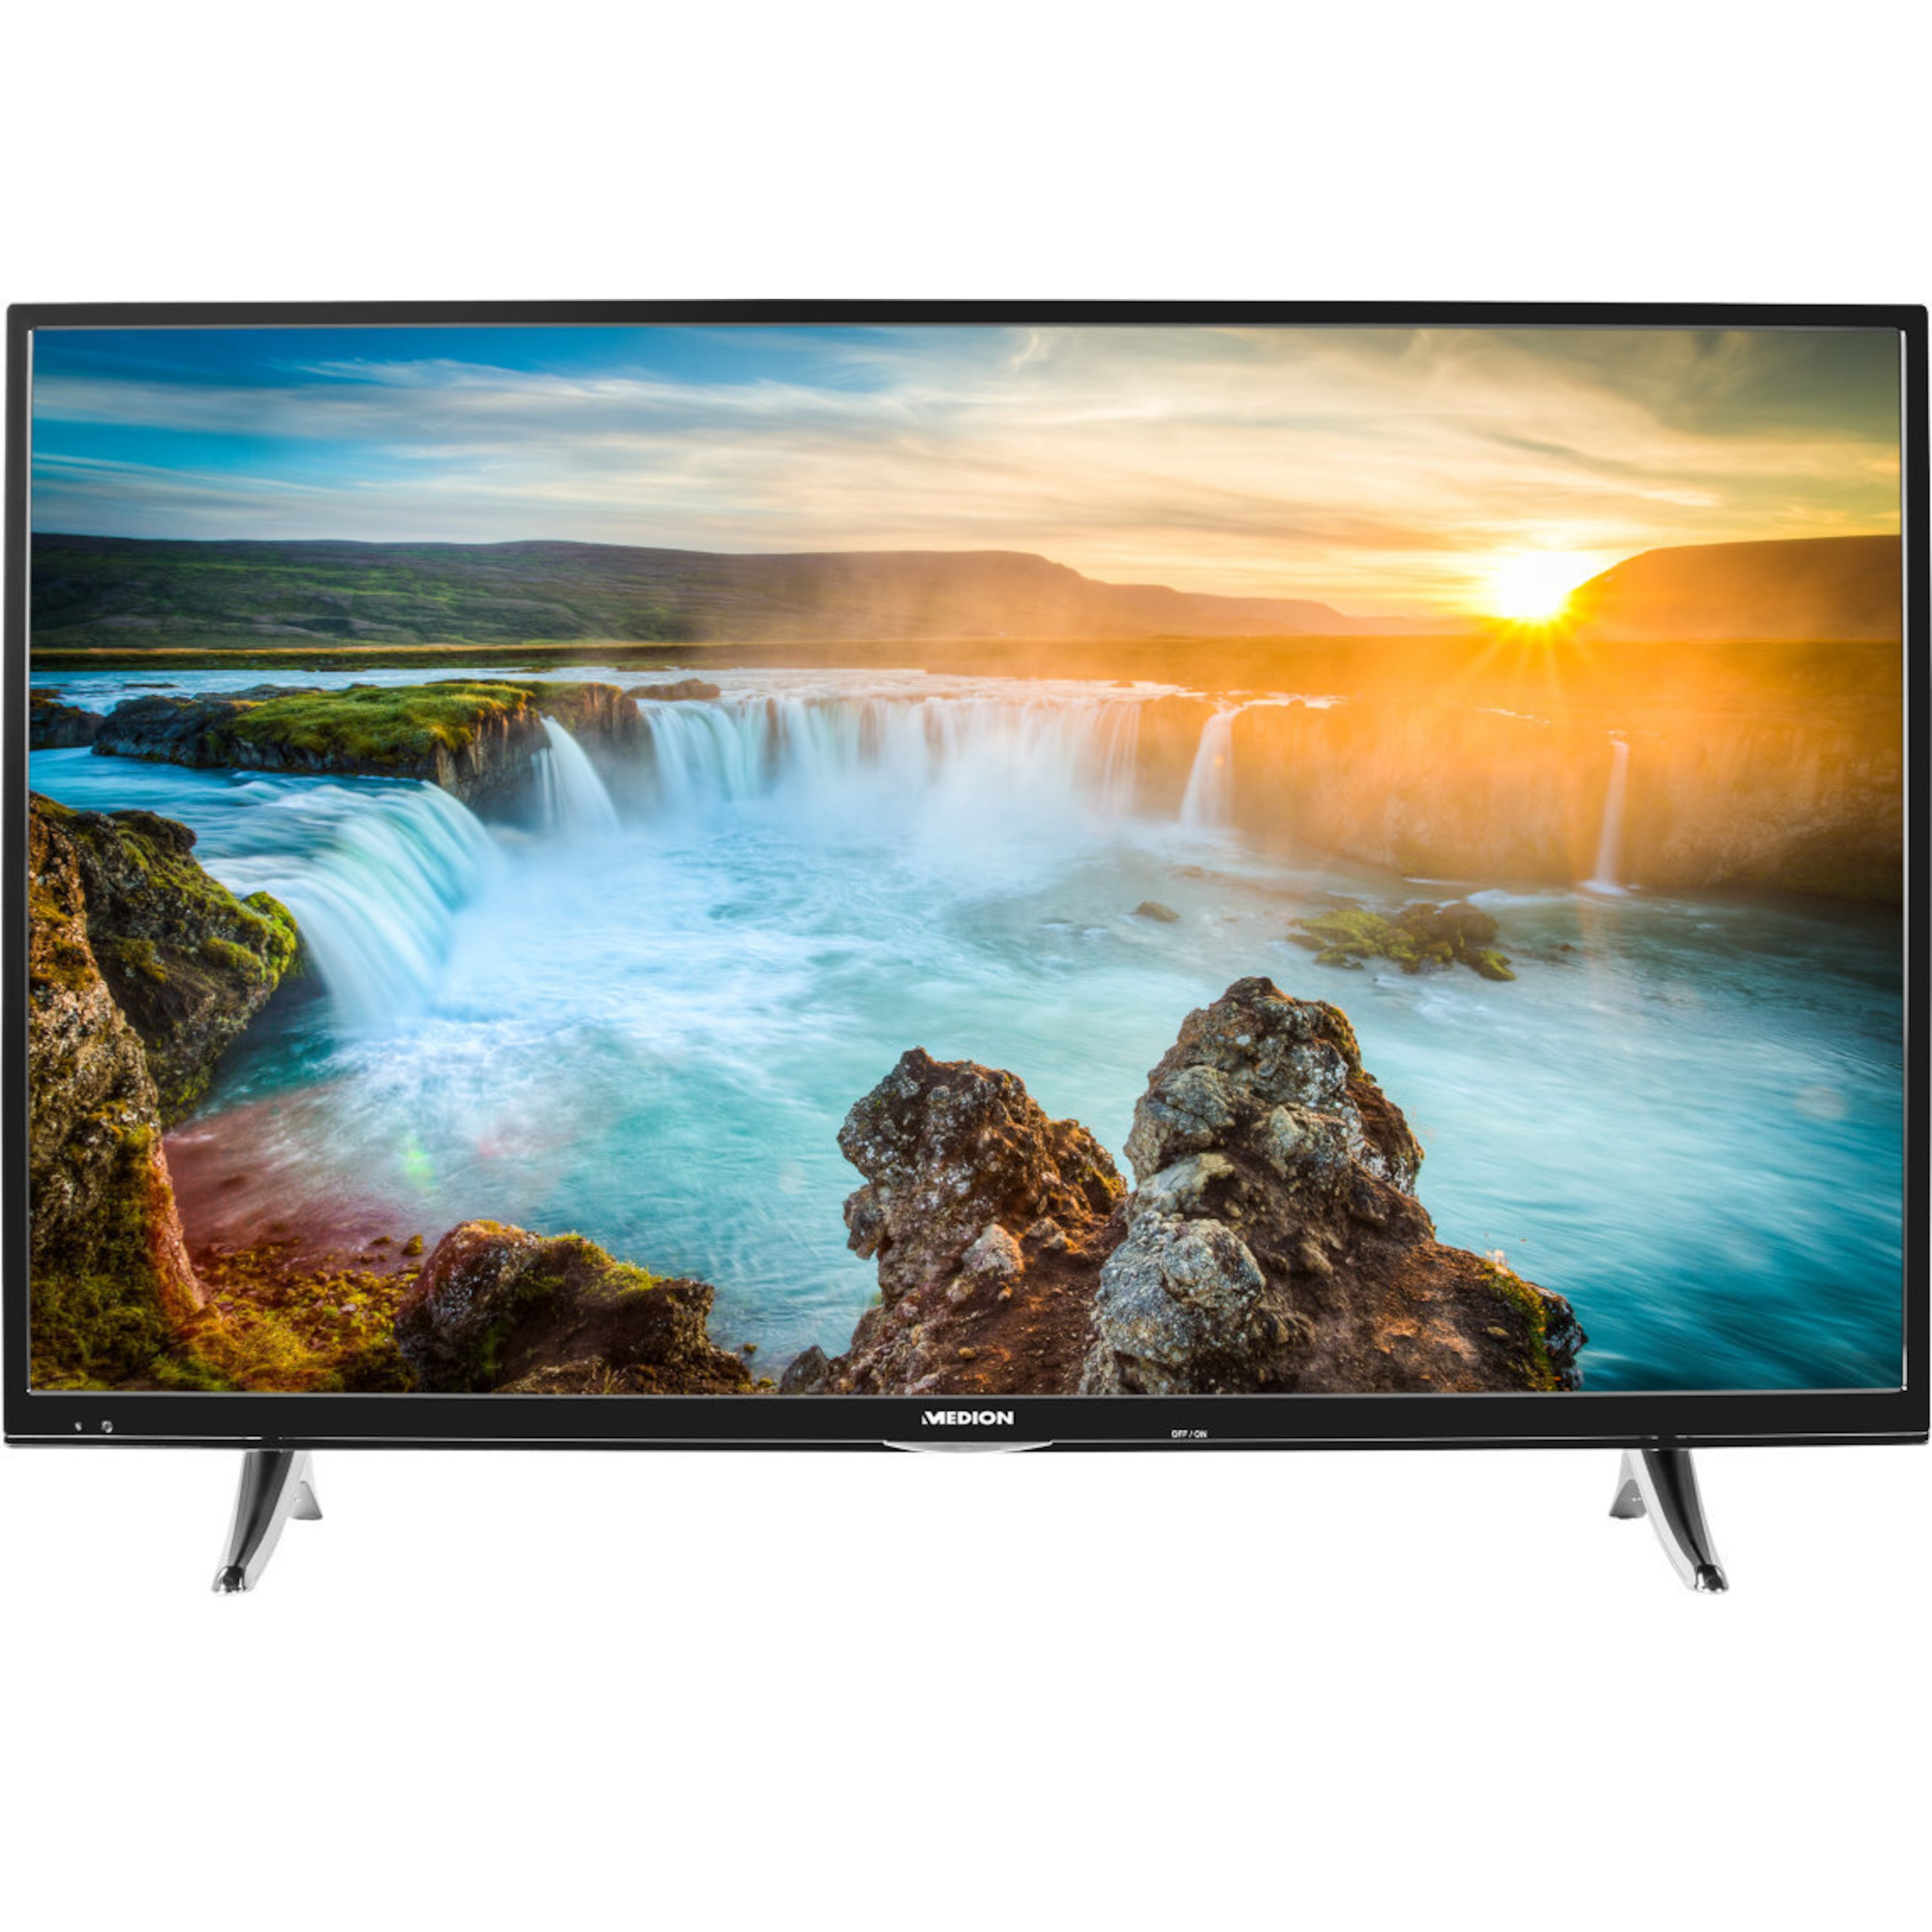 MEDION® LIFE® X17034 TV, 123,2 cm (49) Ultra HD Smart-TV, LED-Backlight, HD Triple Tuner, WLAN, PVR ready, 1200 MPI